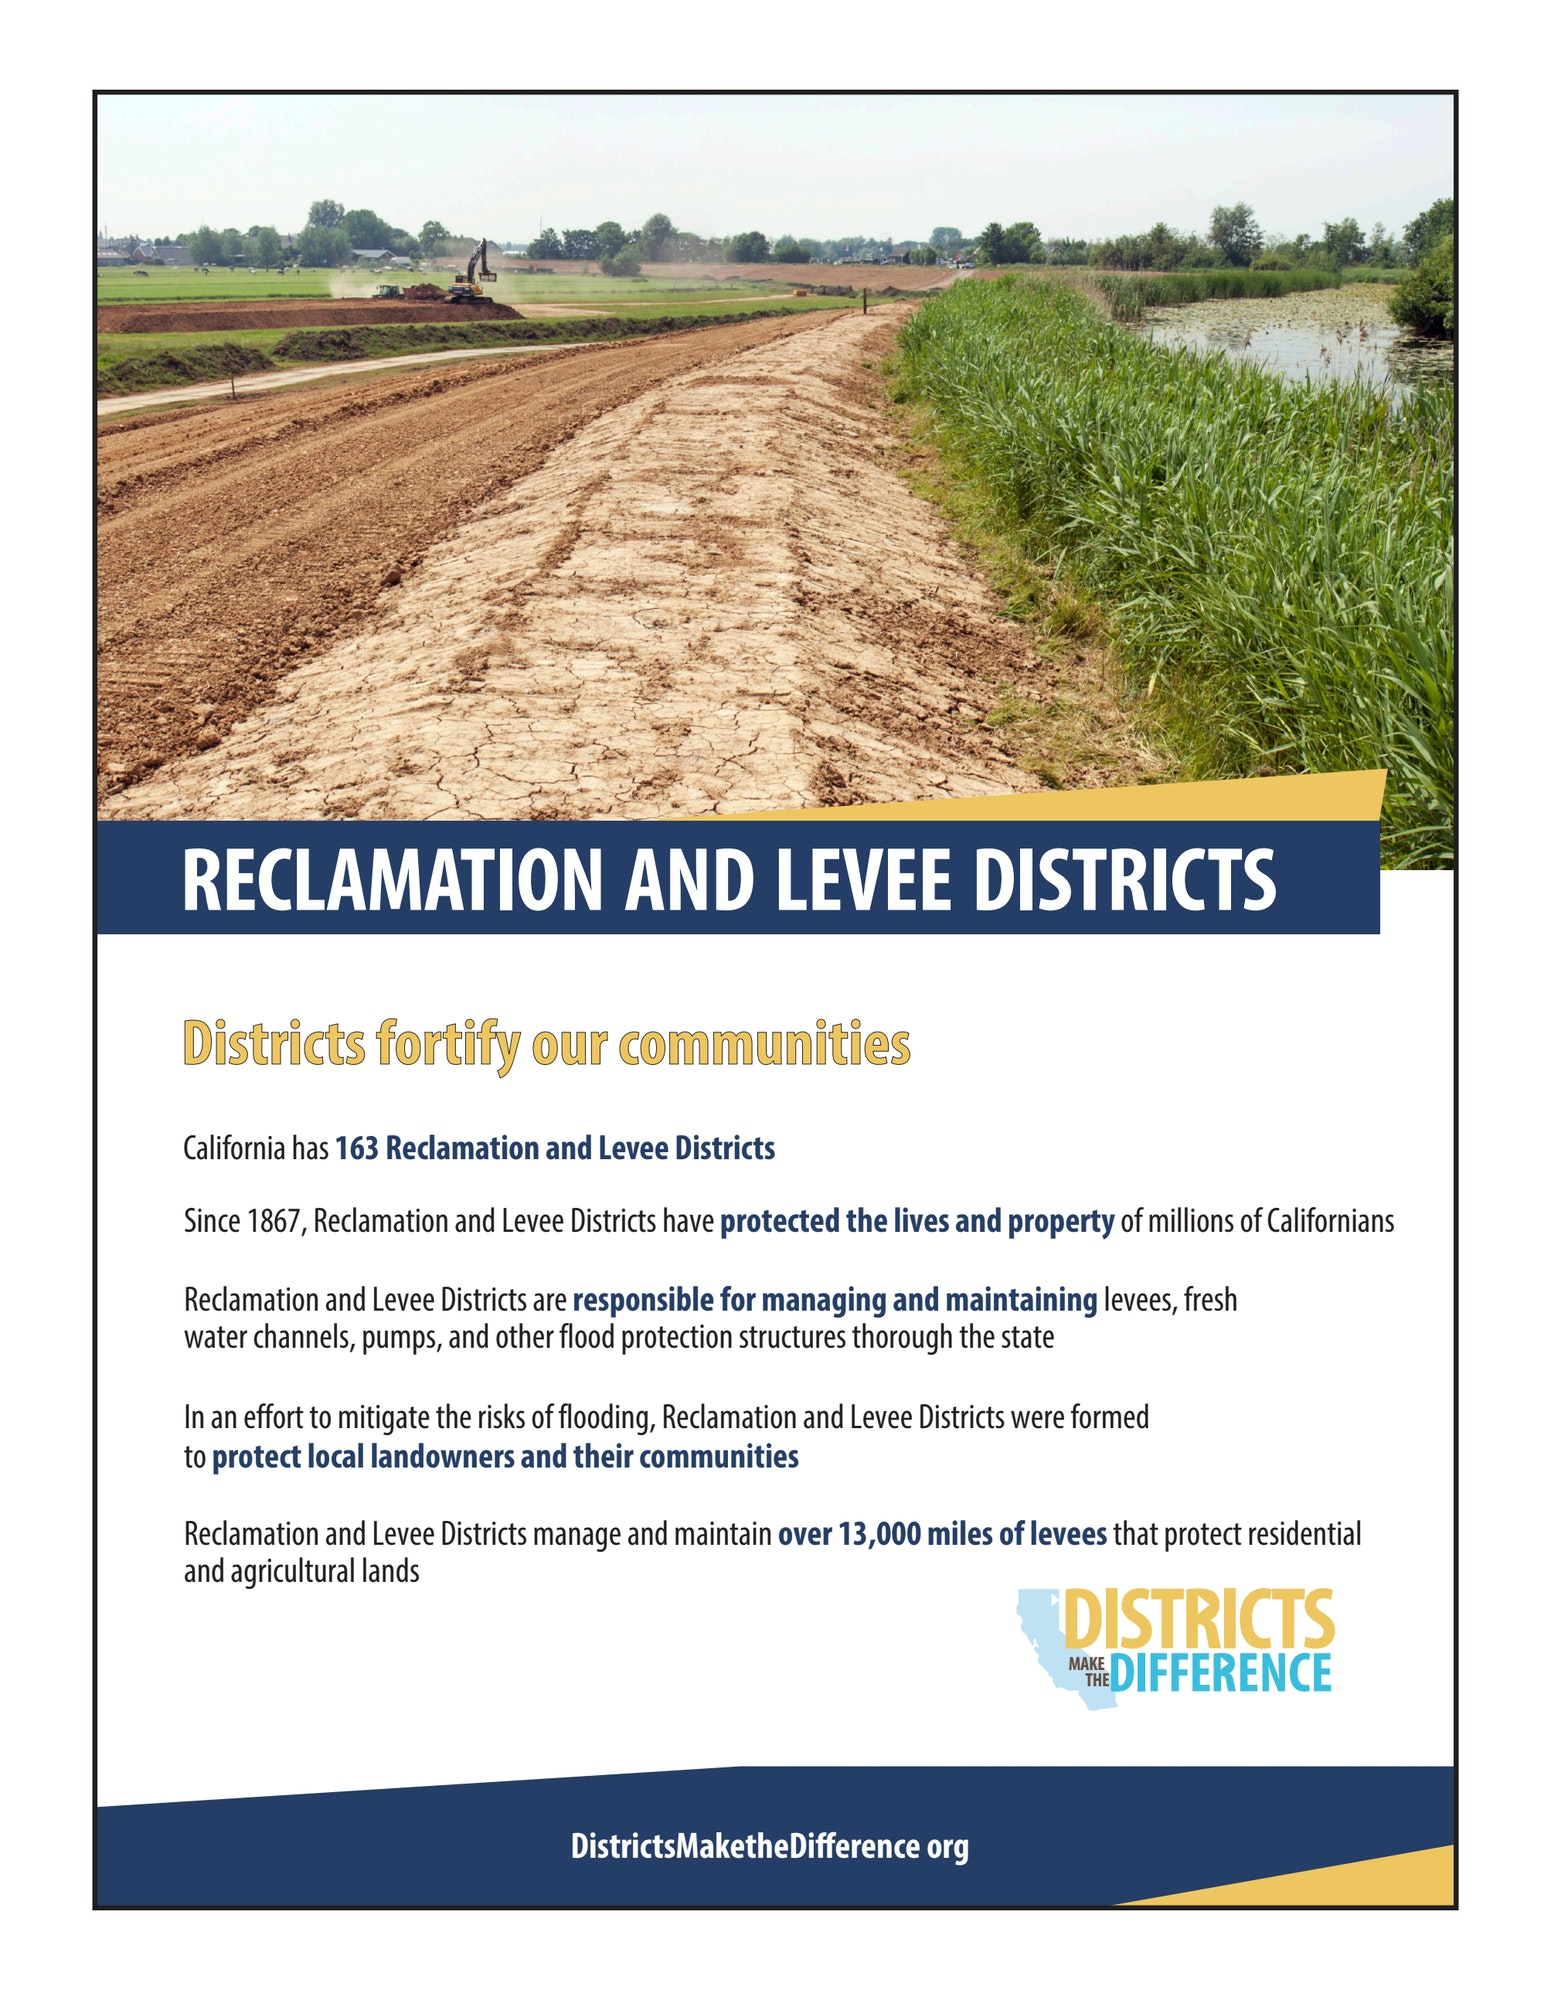 Districts Make a Difference Flyer about Reclamation and Levee Districts